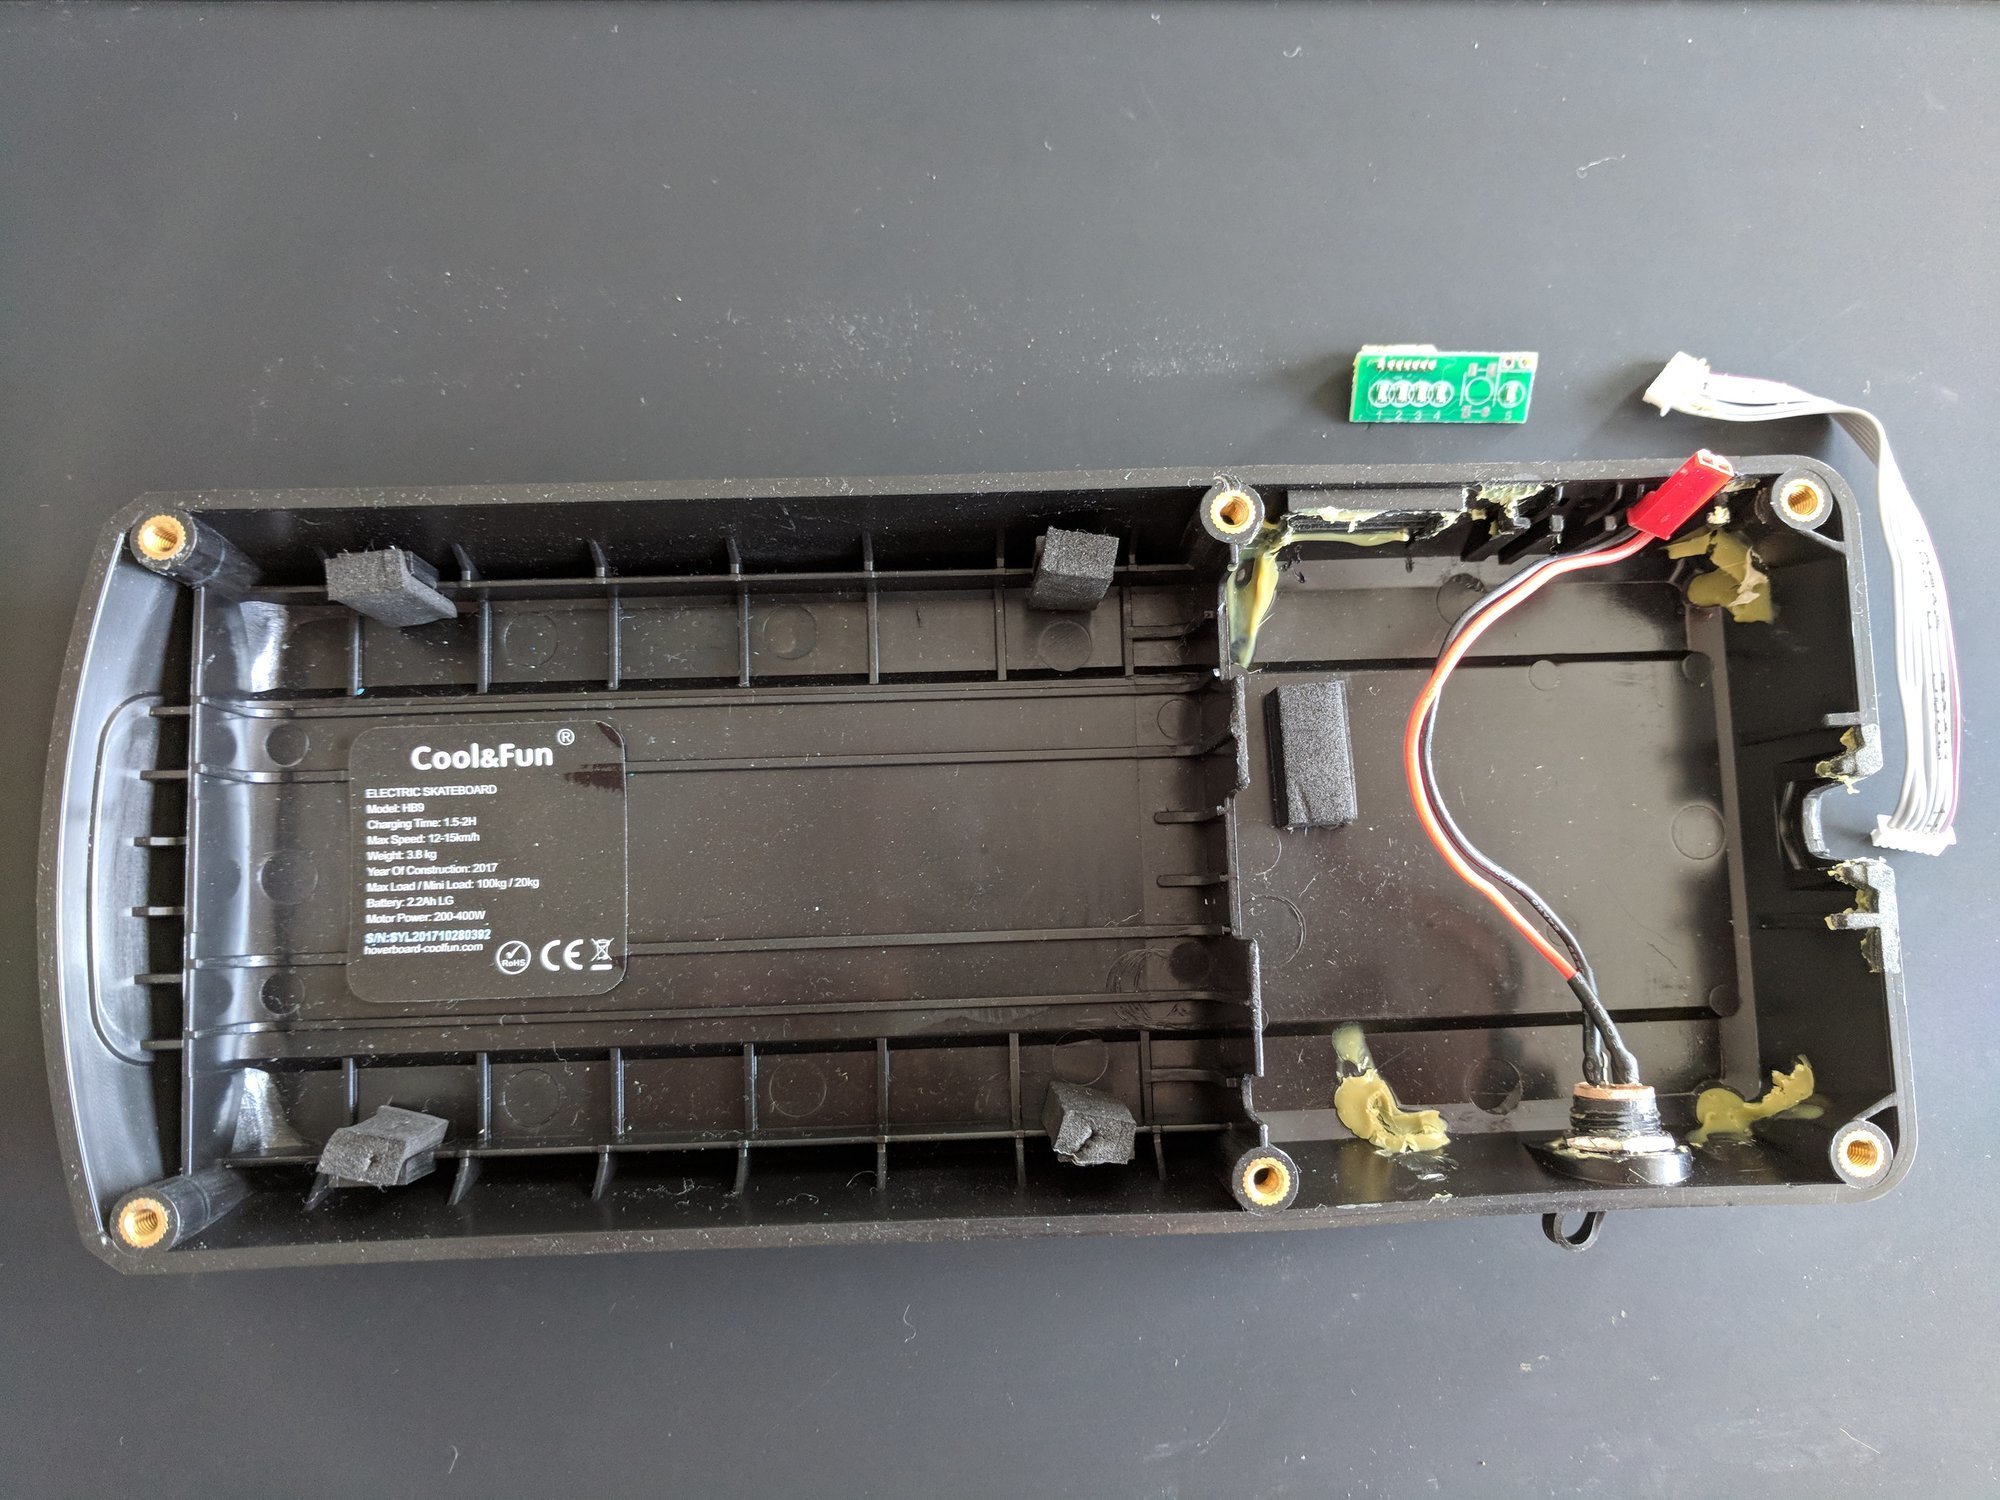 The enclosing of the battery and the electronics of the electric skateboard